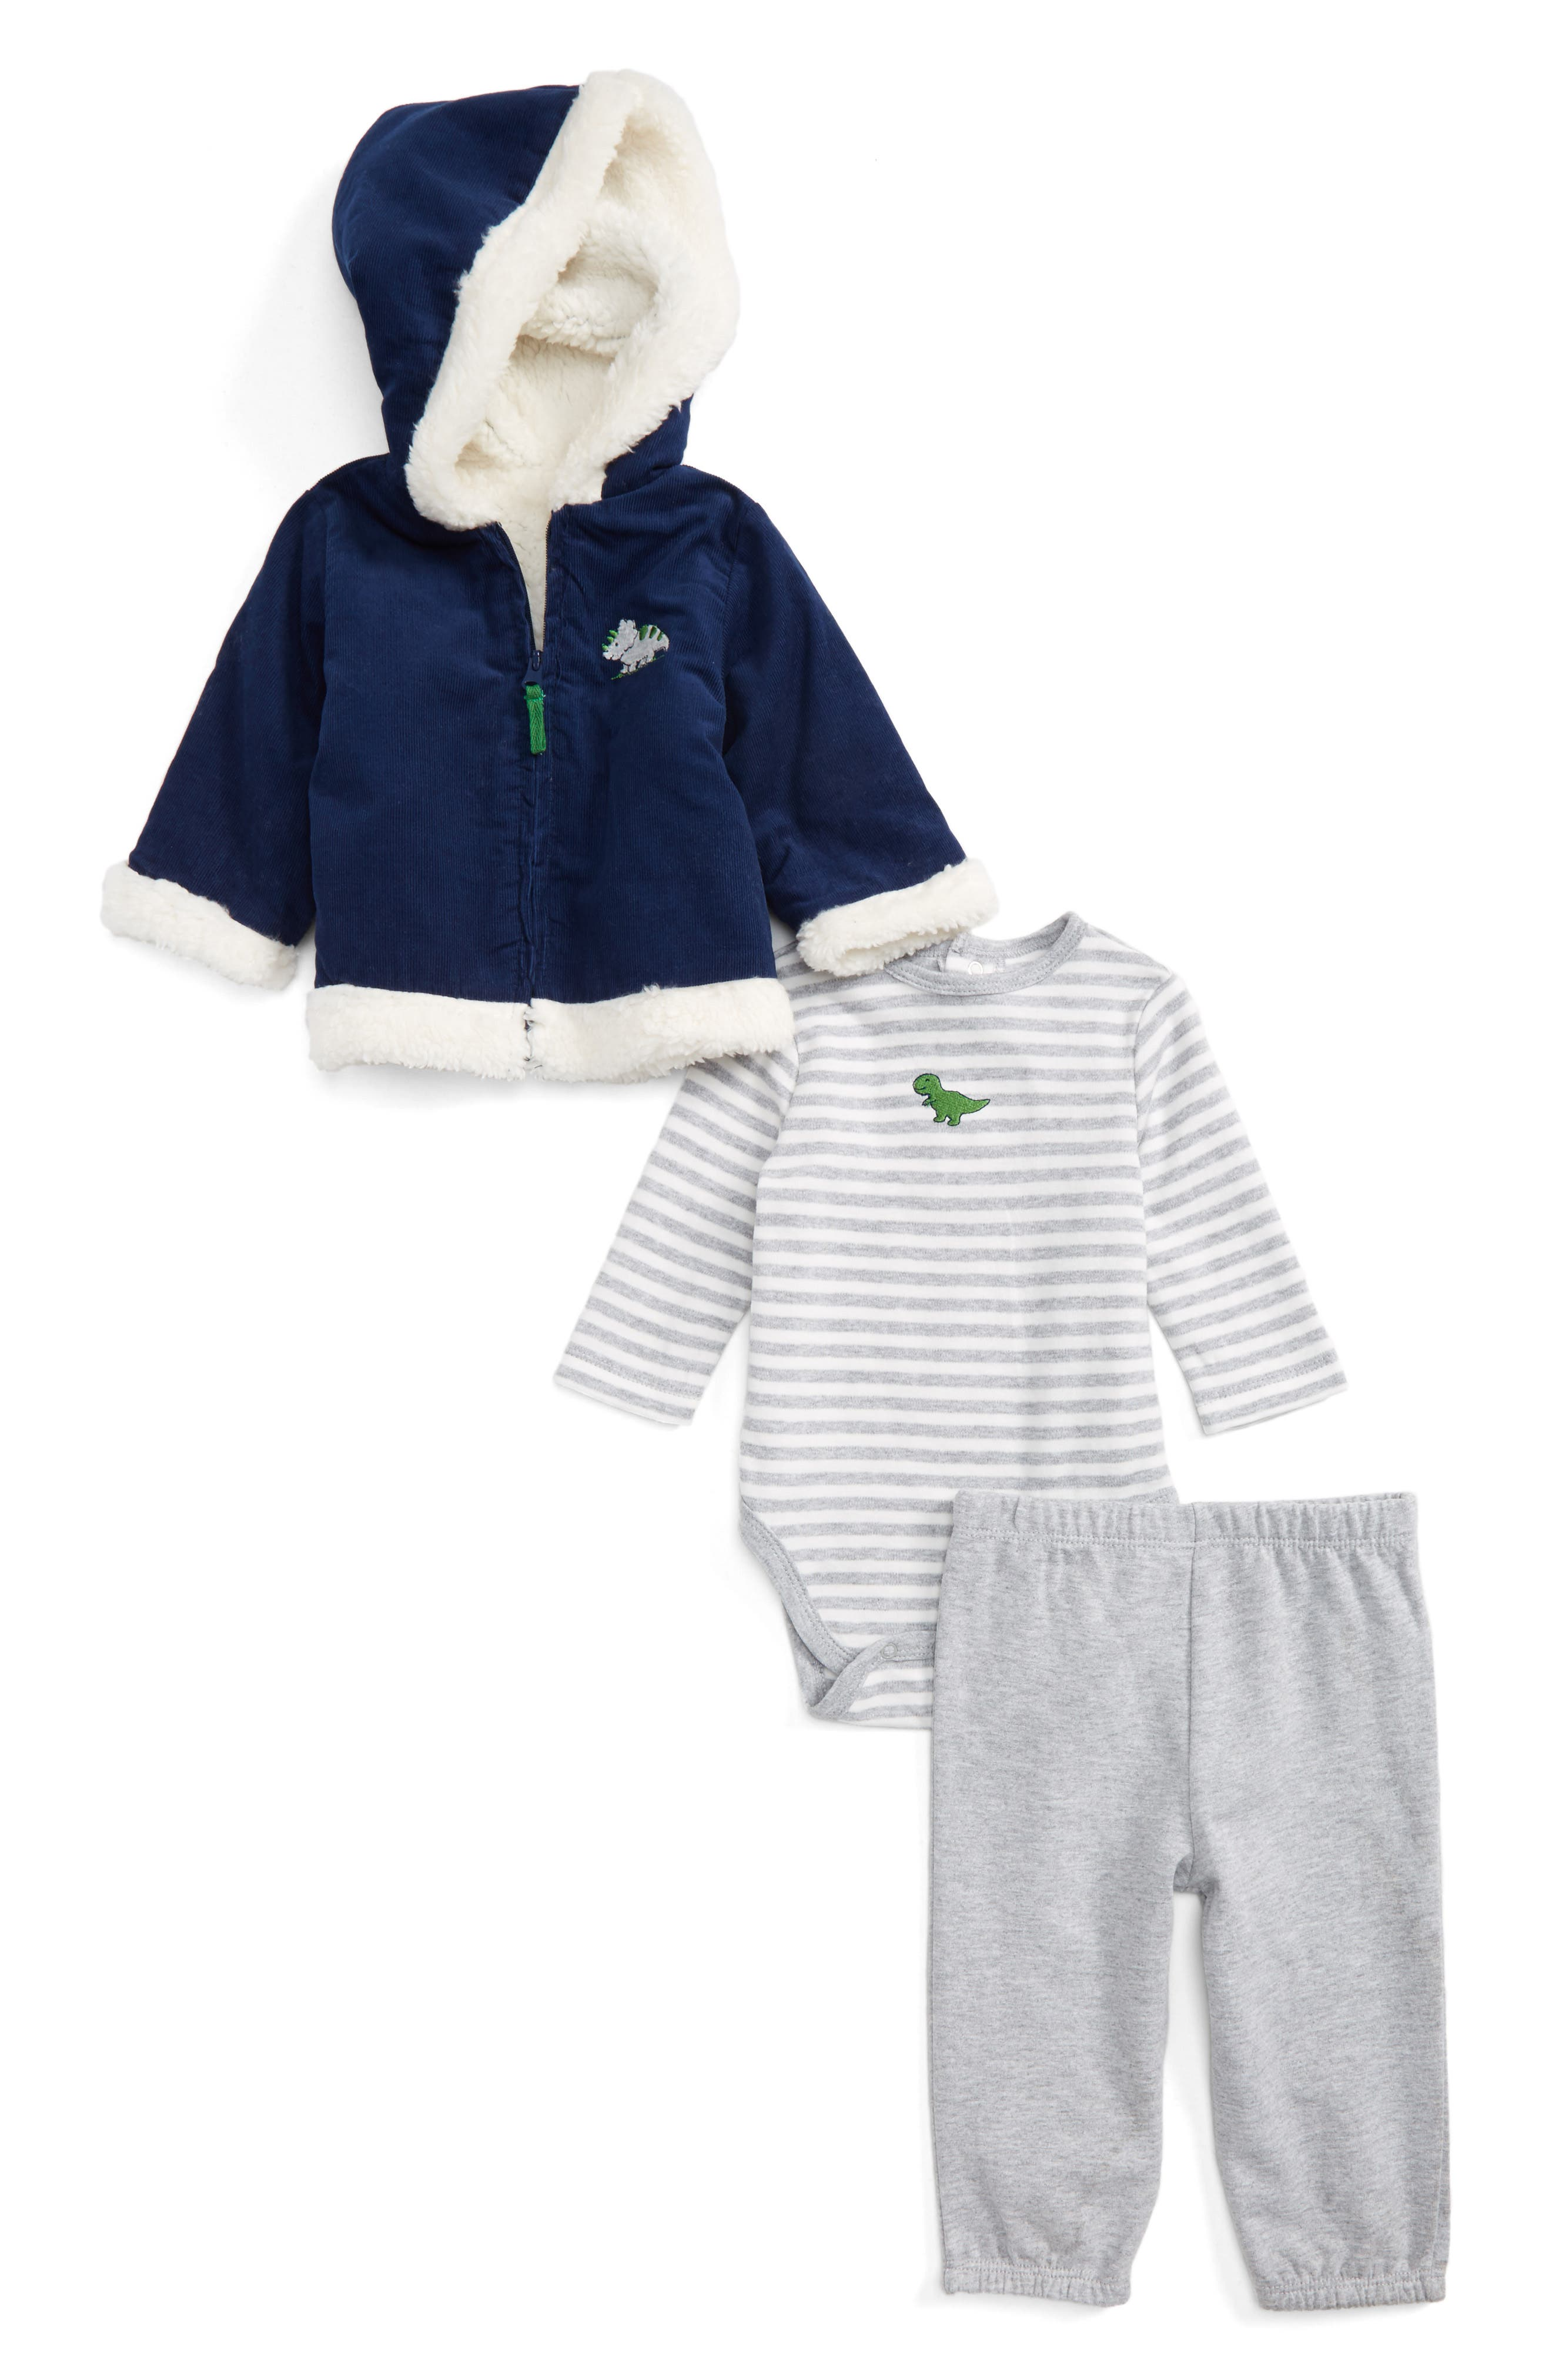 Main Image - Little Me Dashing Jacket, Bodysuit & Pants Set (Baby Boys)